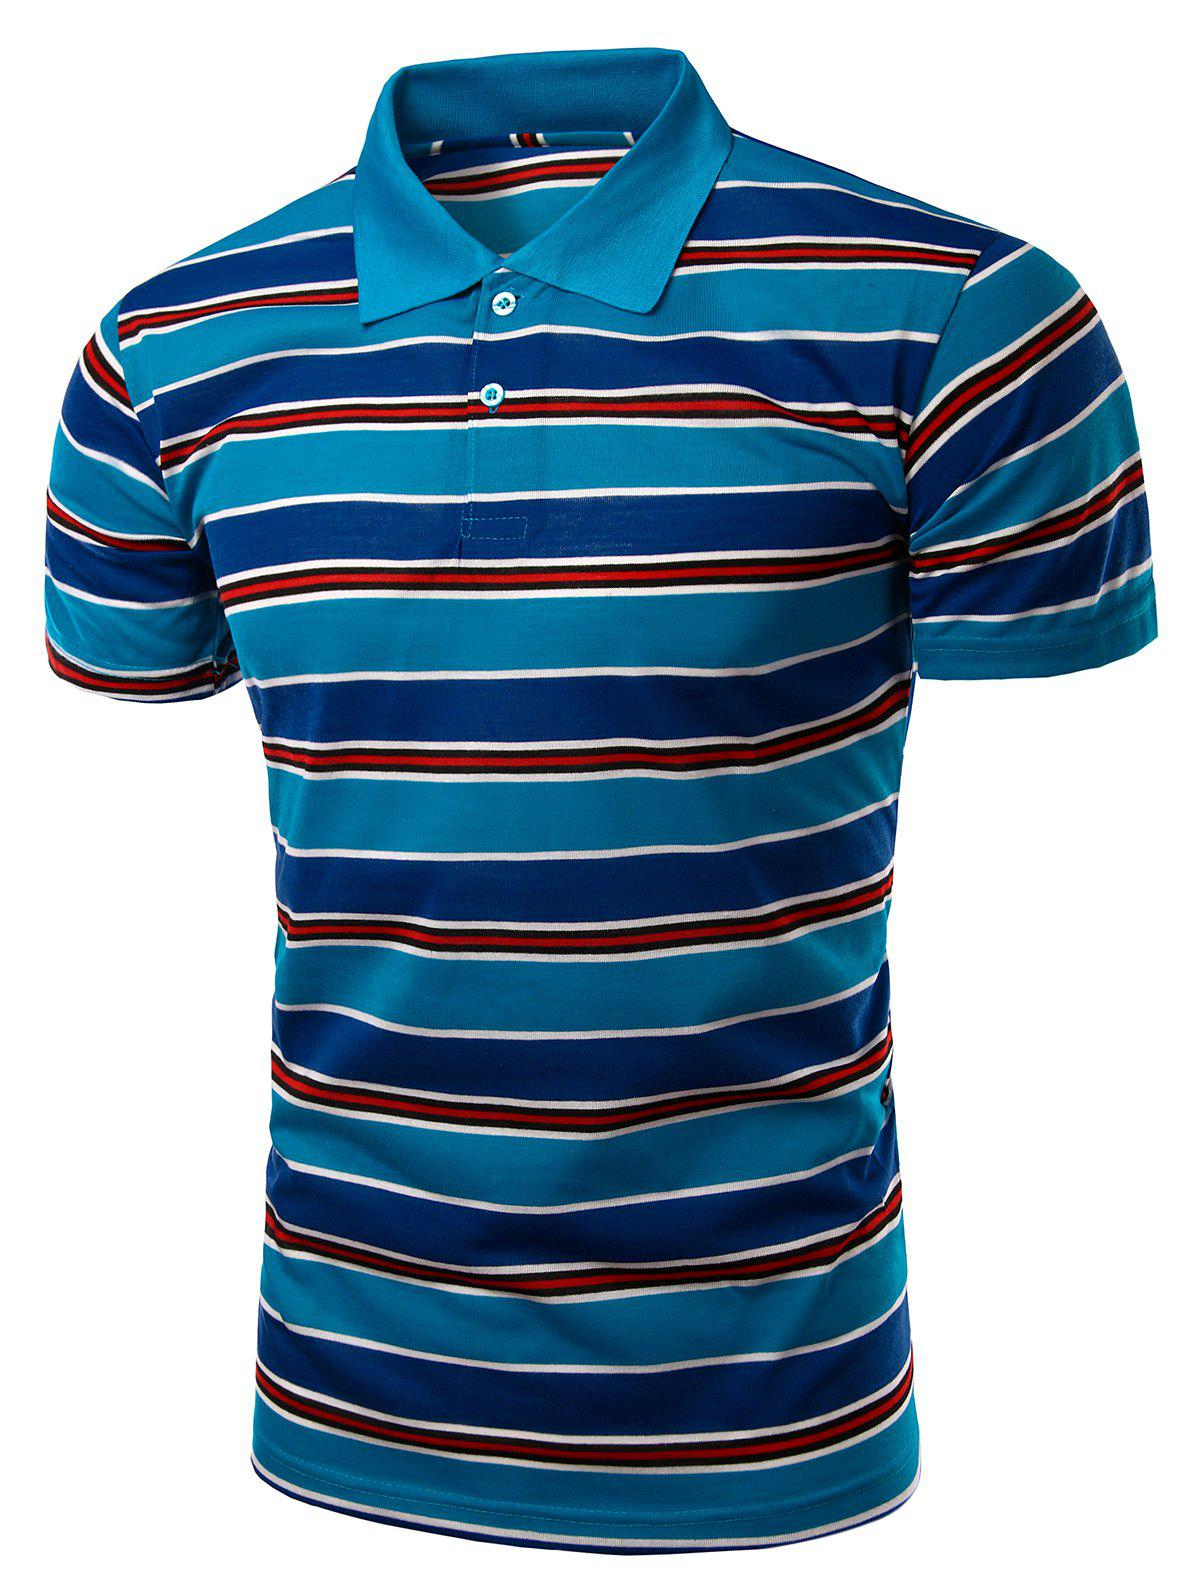 Stylish Turn-Down Collar Striped Print Short Sleeve Polo T-Shirt For Men - SAPPHIRE BLUE XL